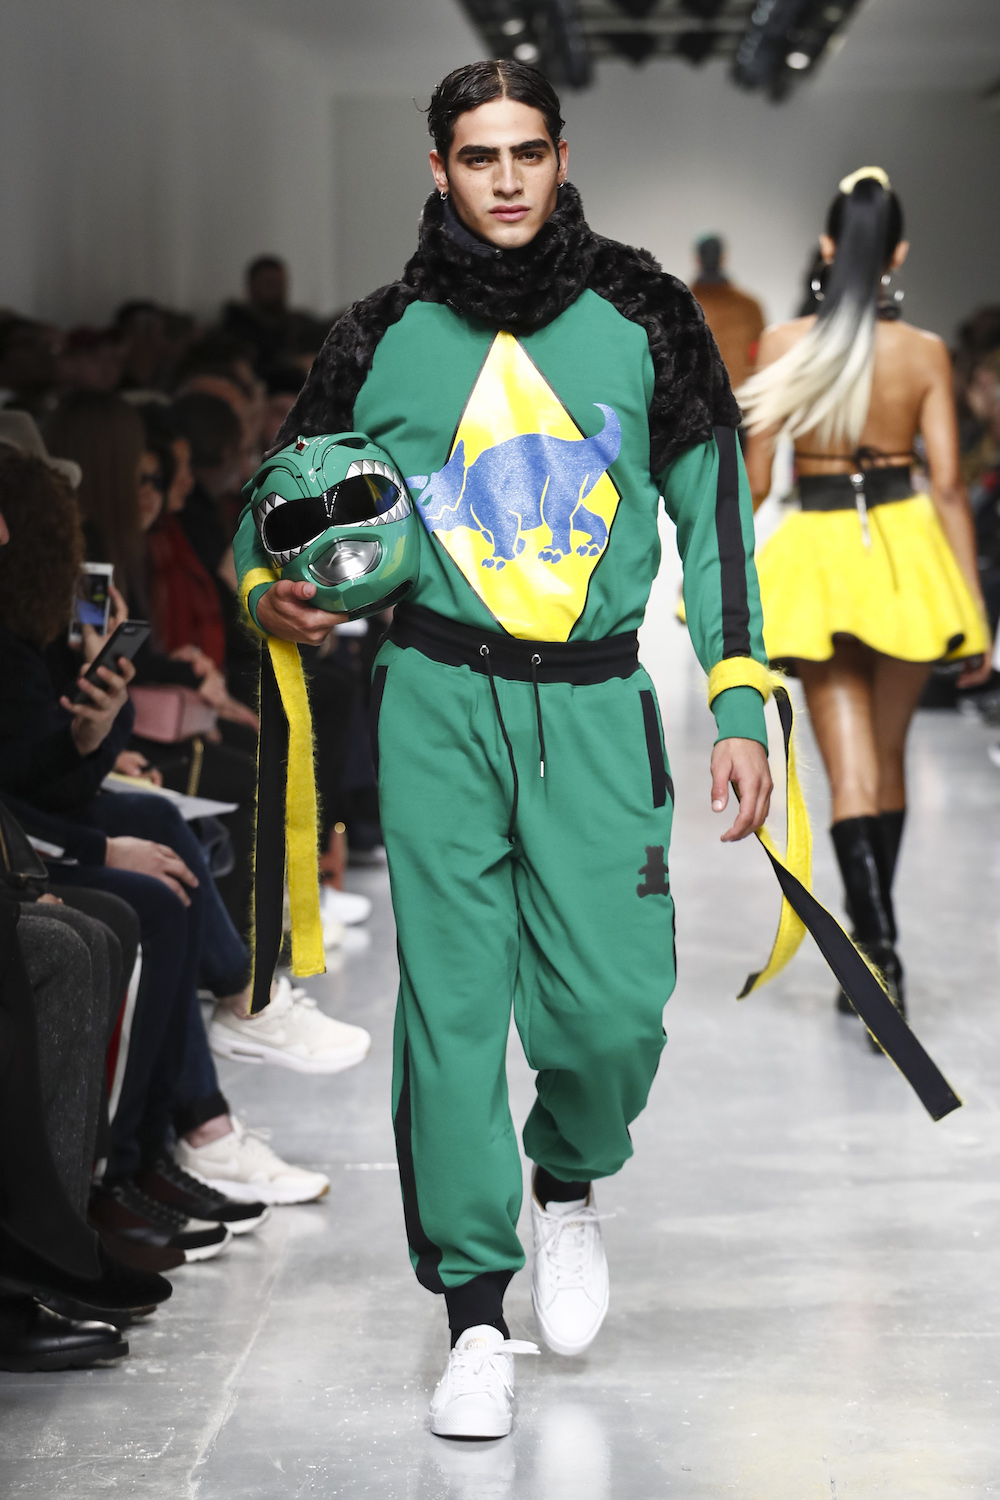 Bobby Abley Mighty Morphin Power Rangers - 1839479